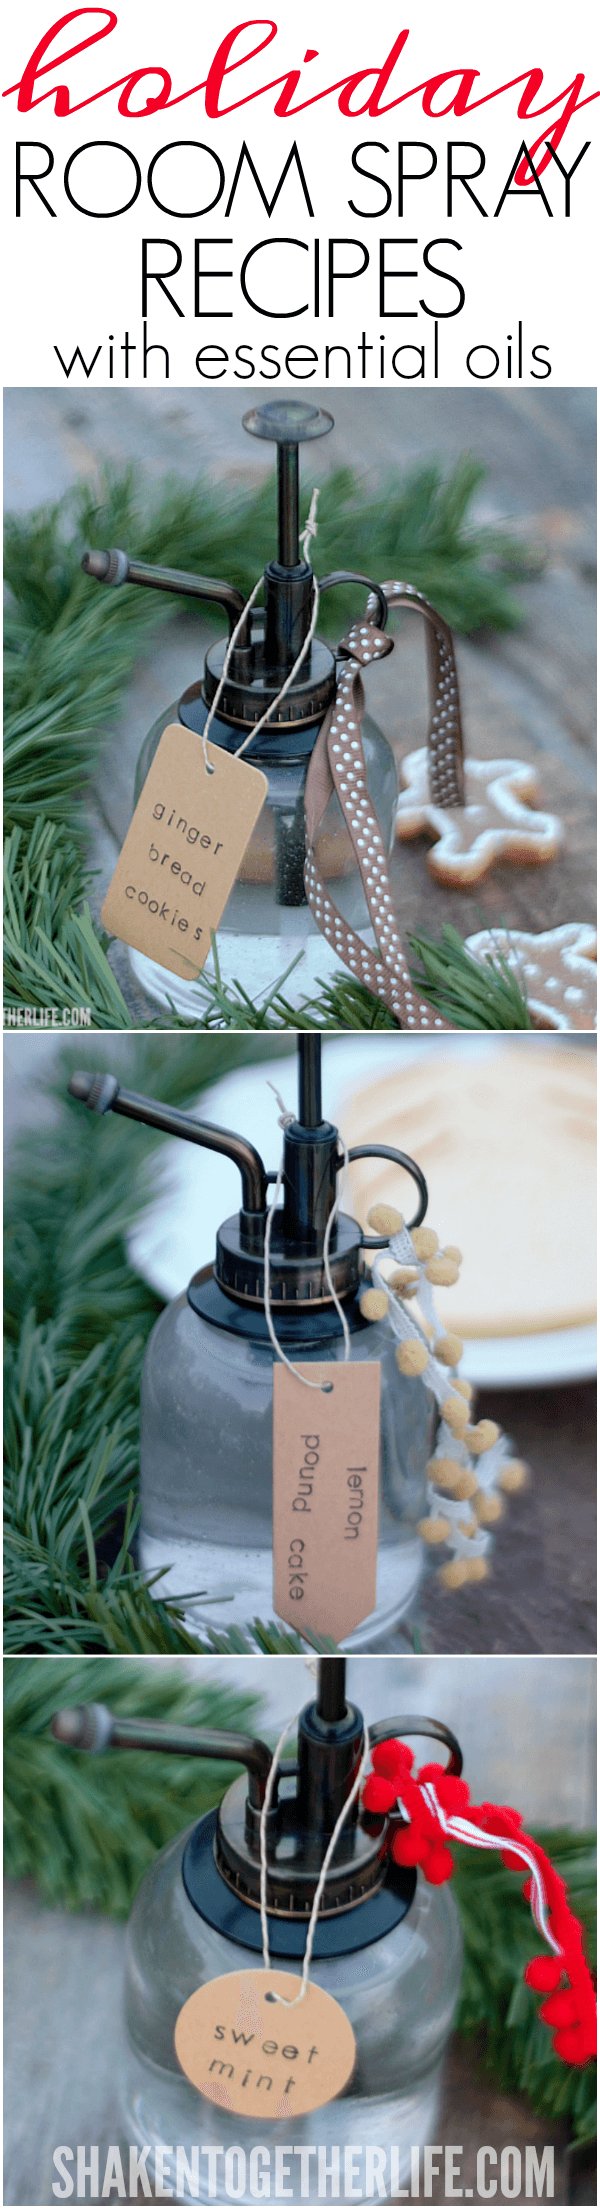 Make Holiday Room Sprays that smell just like holiday treats! Start with the simple room spray base and customize it with essential oils to create Sweet Mint, Gingerbread Cookies and even Banana Bread room sprays! Perfect for foodies, friends and ... even better, these holiday treats have zero calories and make awesome gifts!